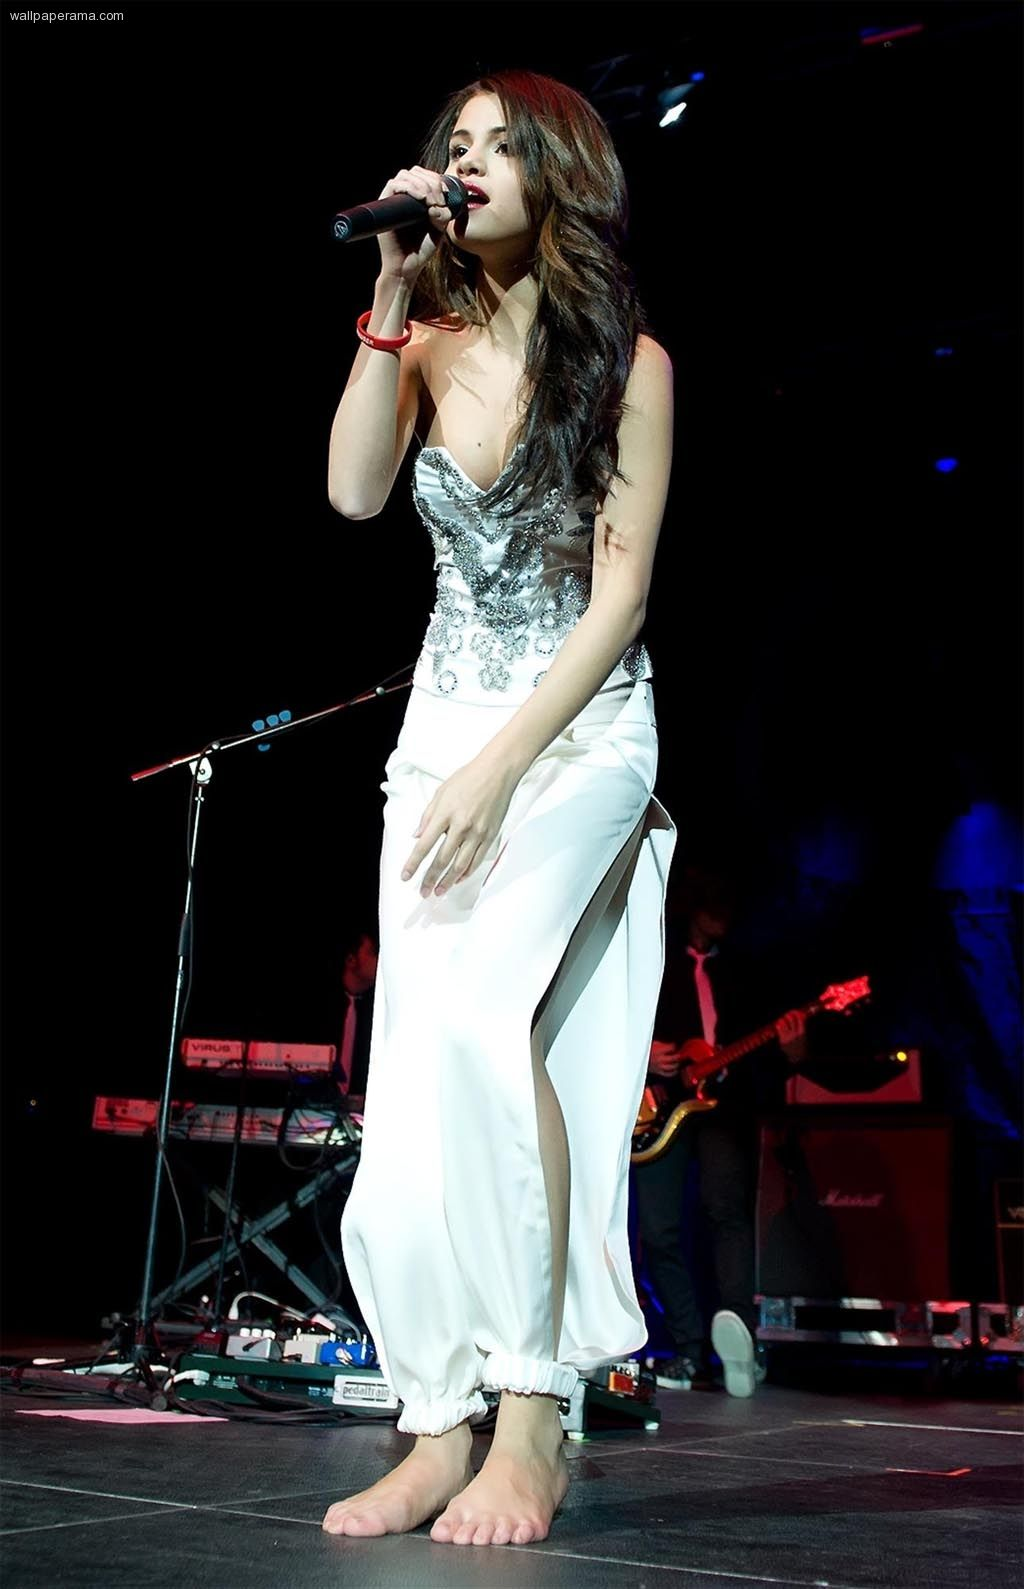 Get the best deal on Selena Gomez tickets by comparing tickets from all over the web: www.rukkus.com/selena-gomez-tickets?ref=pinterest